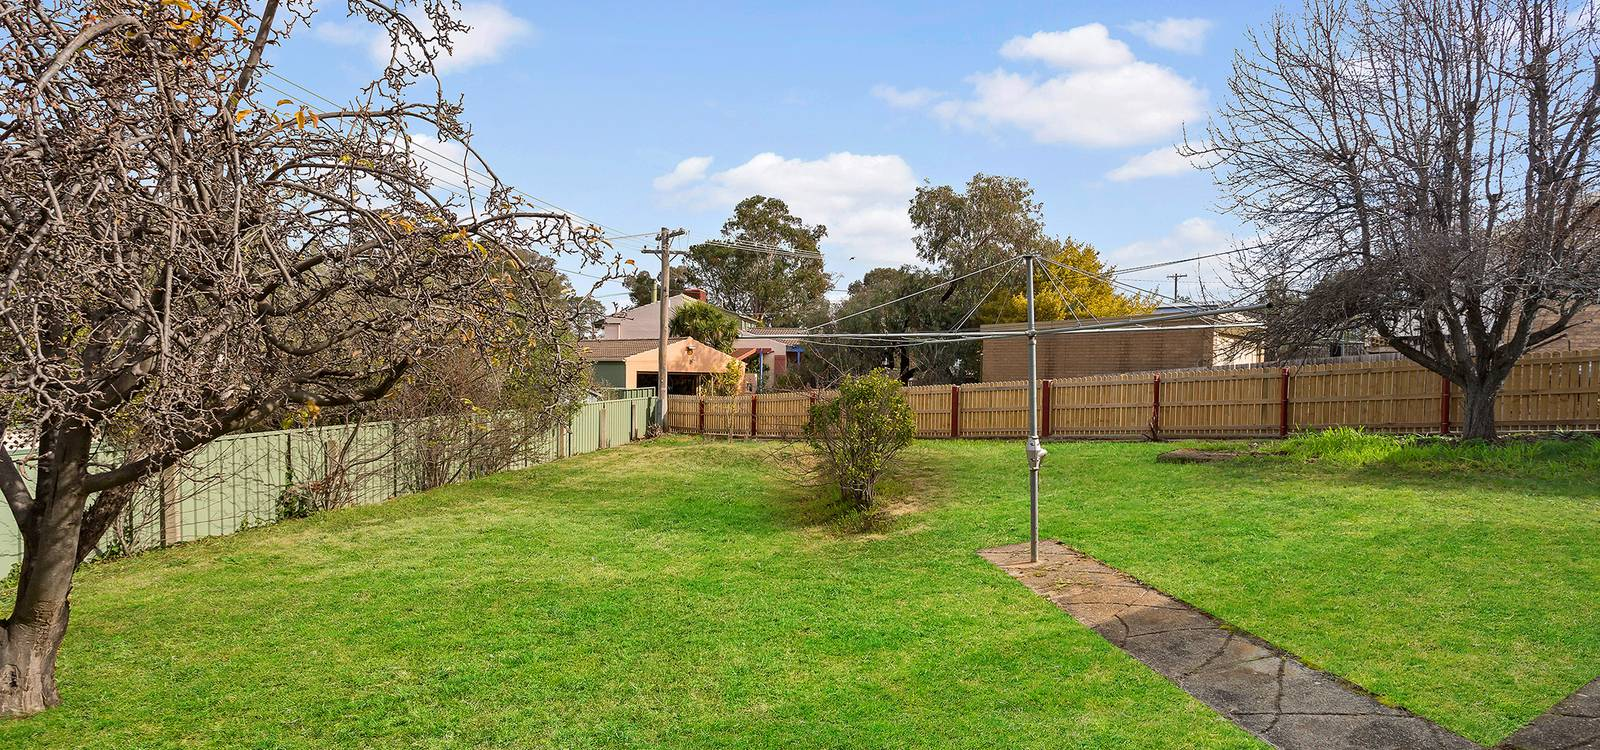 1 Bennet Place SPENCE, ACT 2615 - photo 1